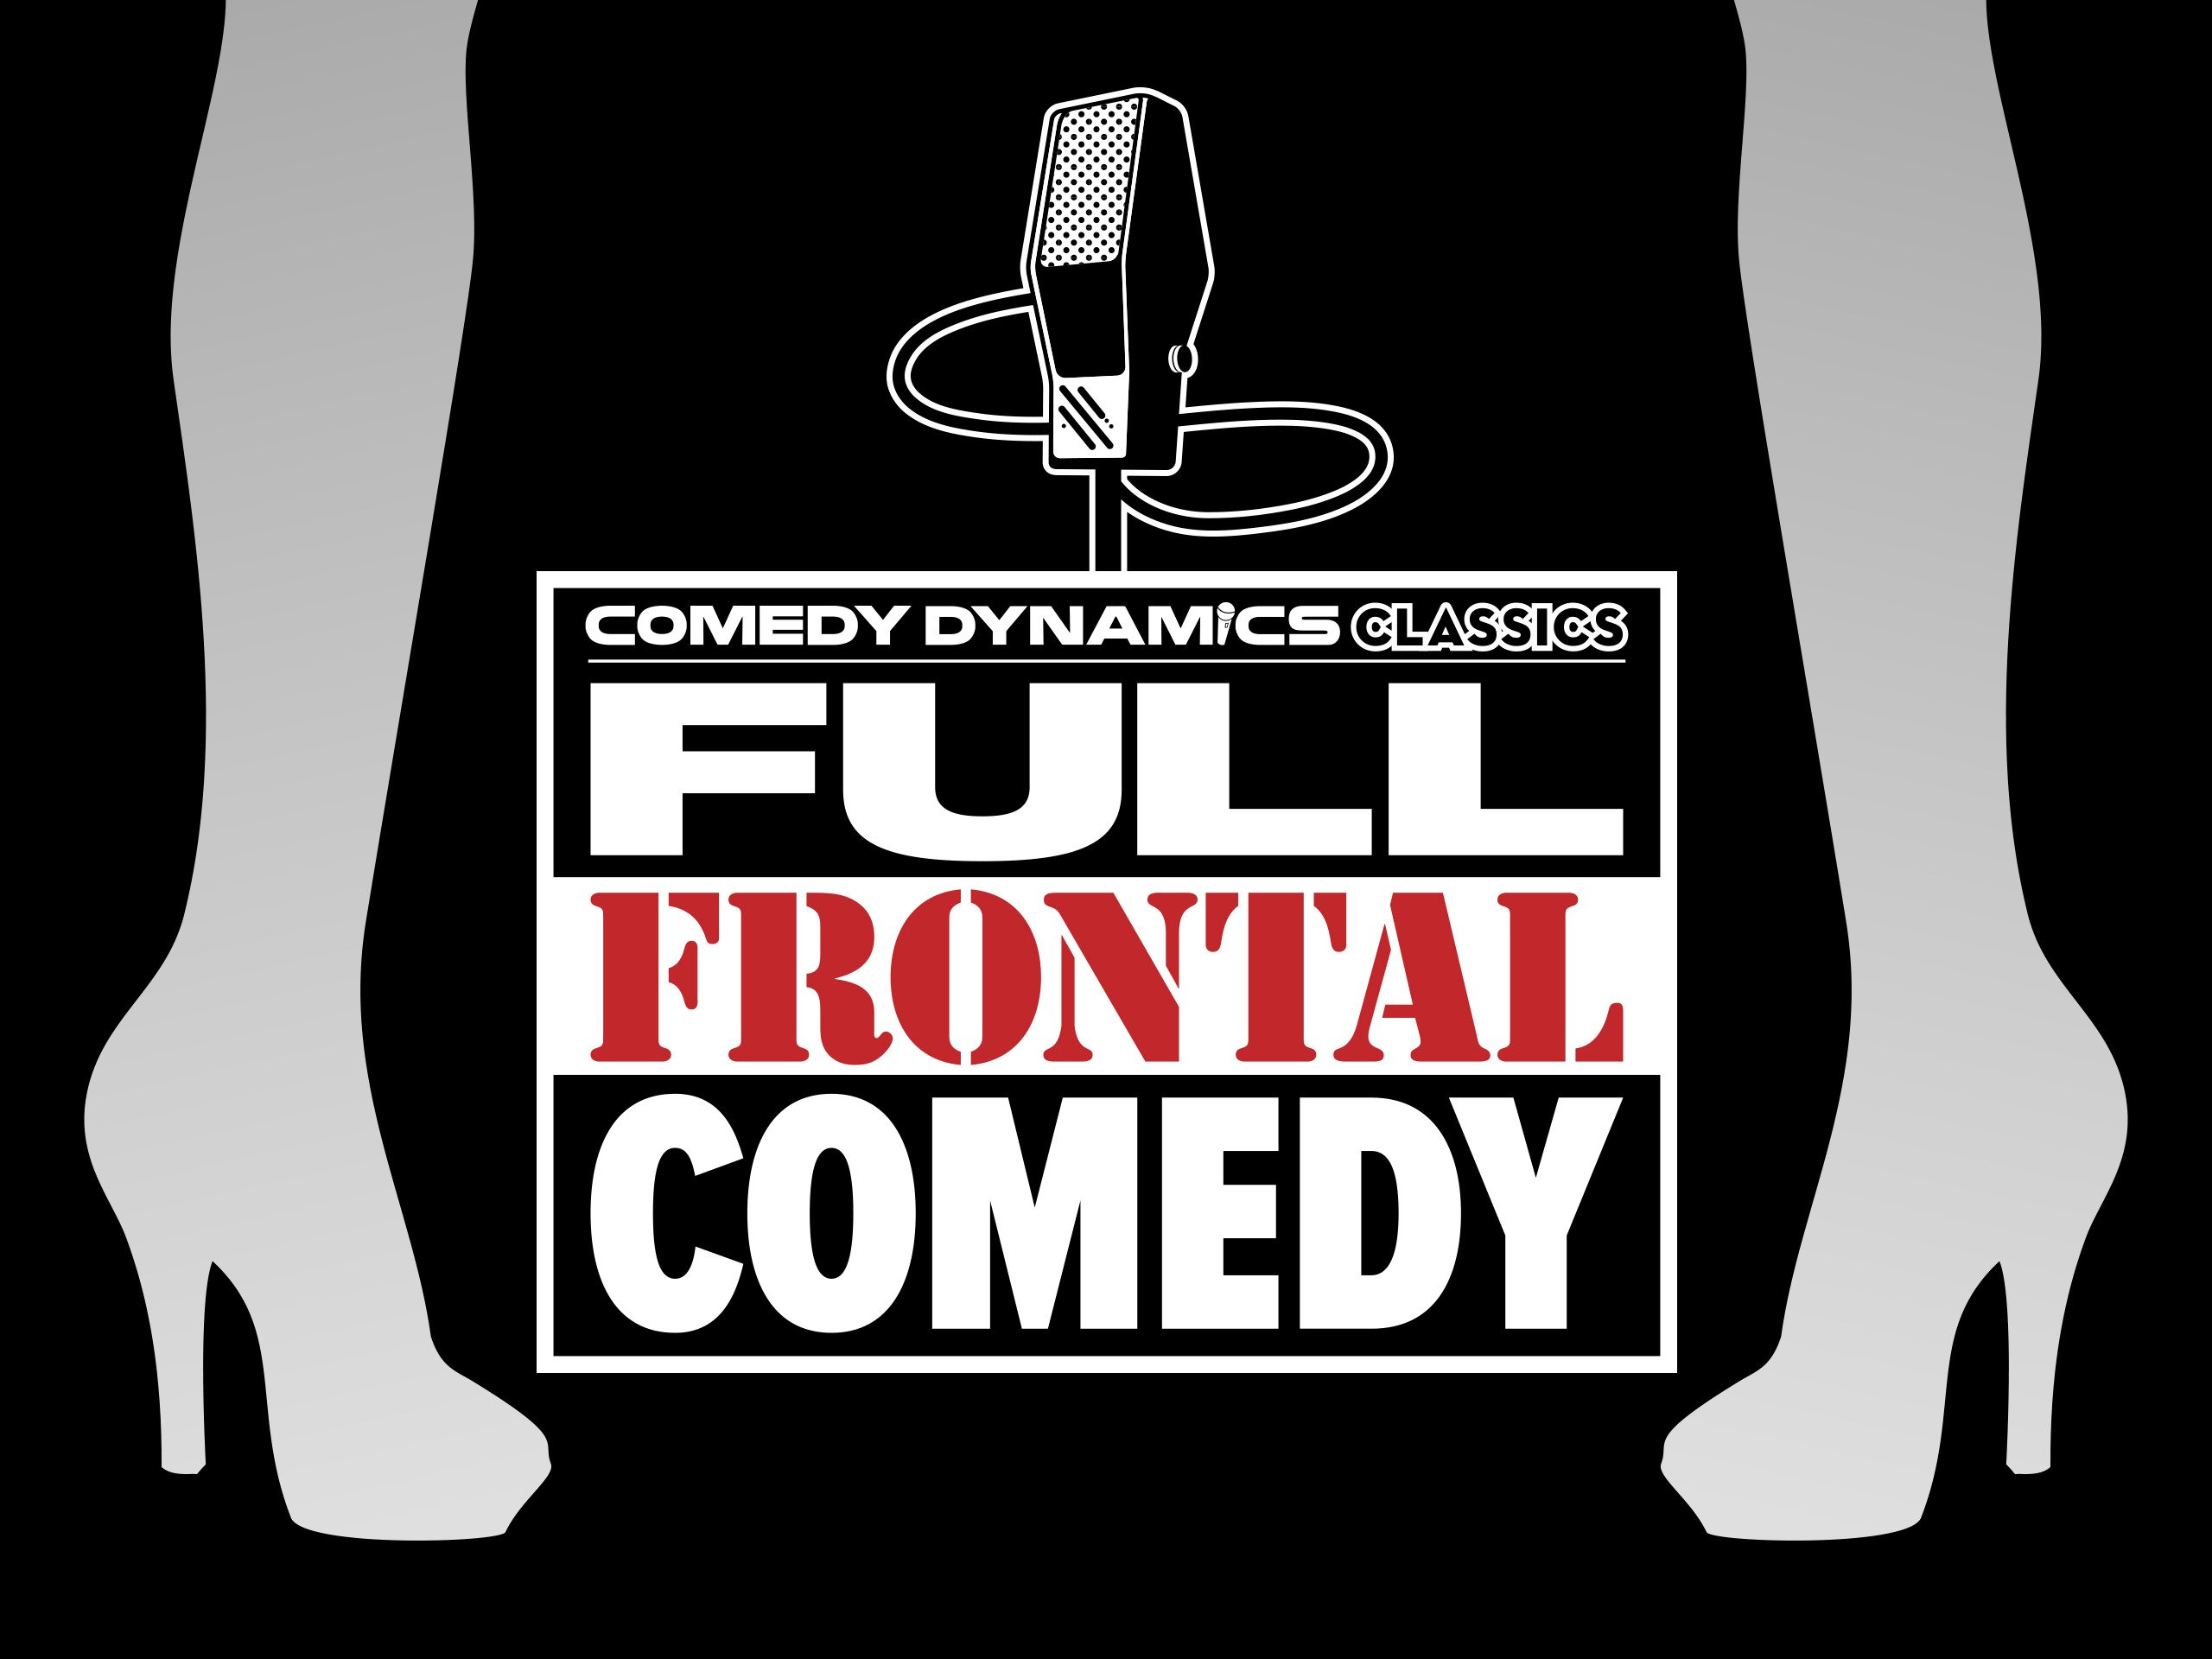 Comedy Dynamics Classics: Full Frontal Comedy